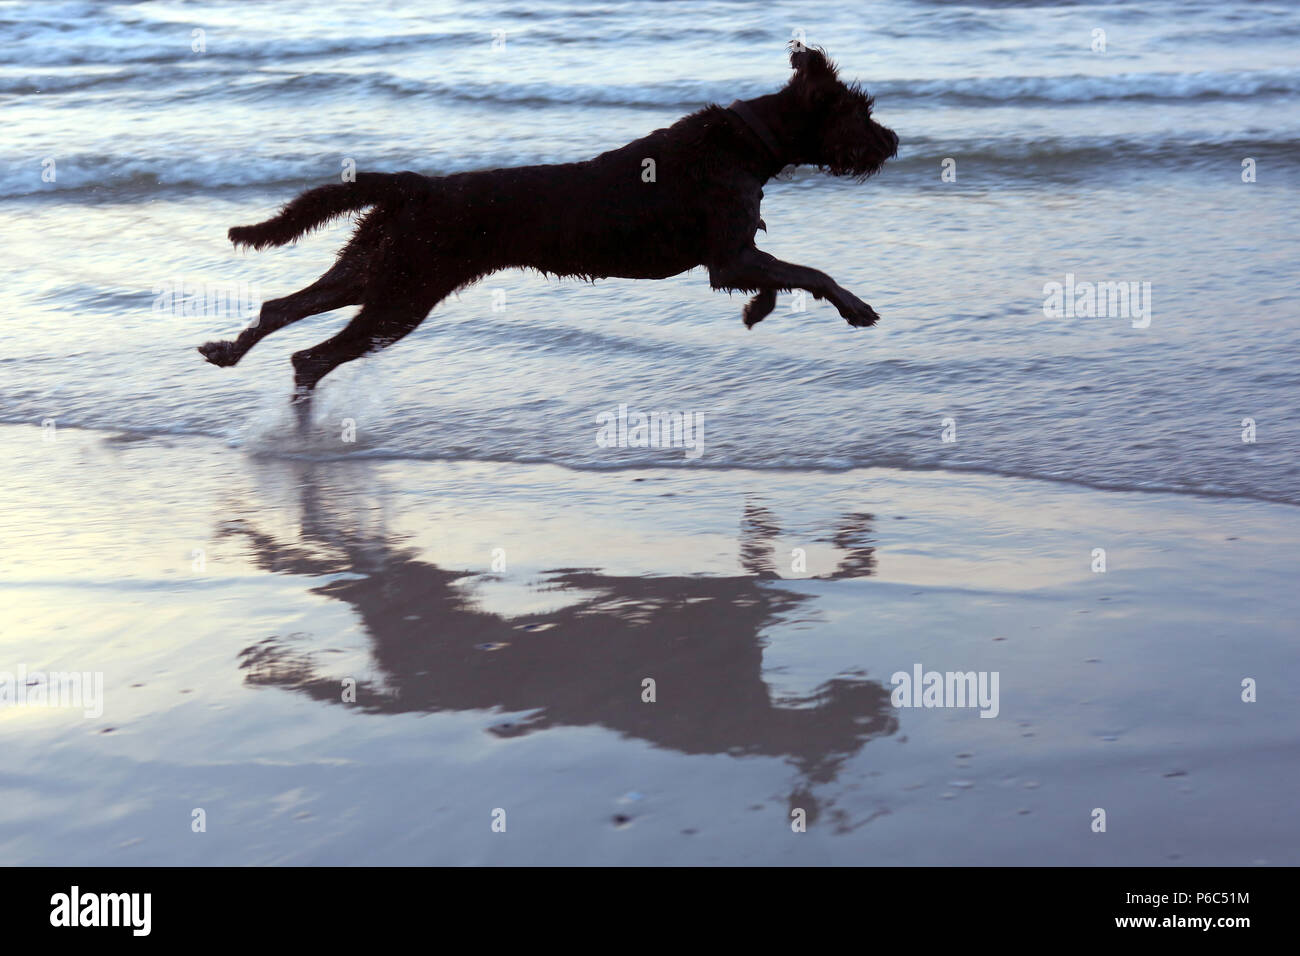 Wustrow, Germany - Riesenschnauzer runs free along the beach - Stock Image